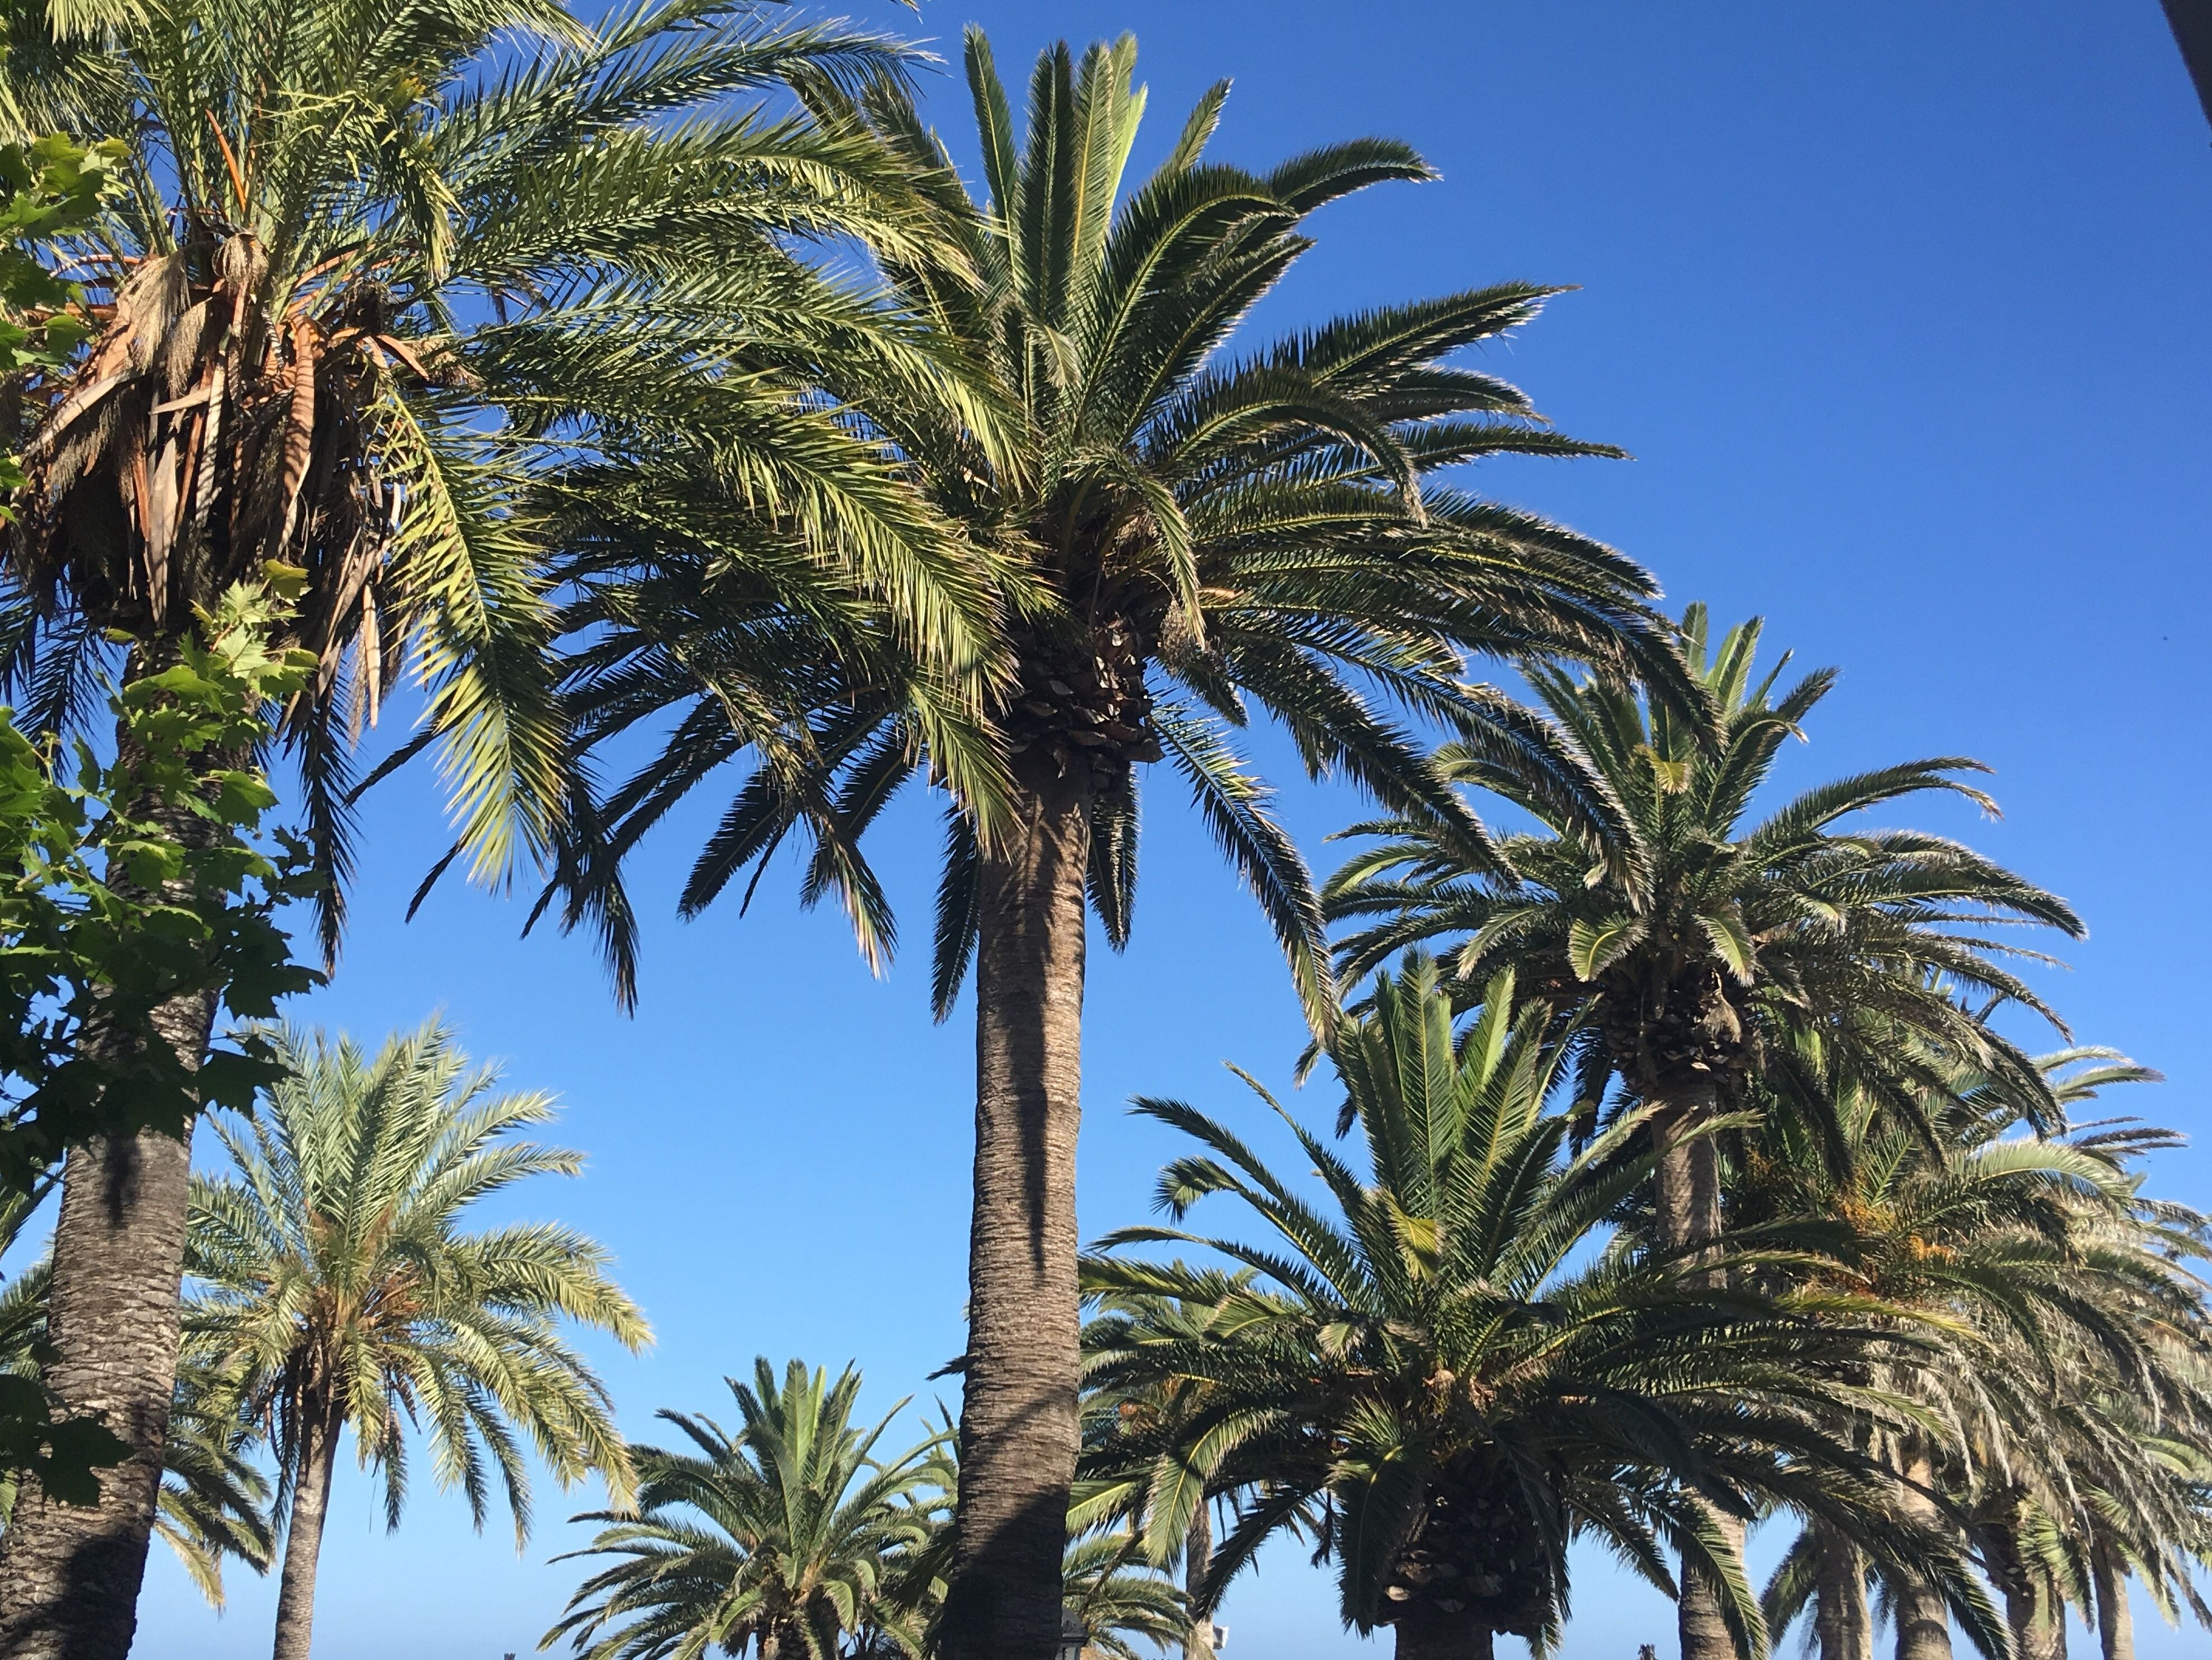 More Palm Trees Palm Trees Blue Blue Sky Beautiful Beauty In Nature